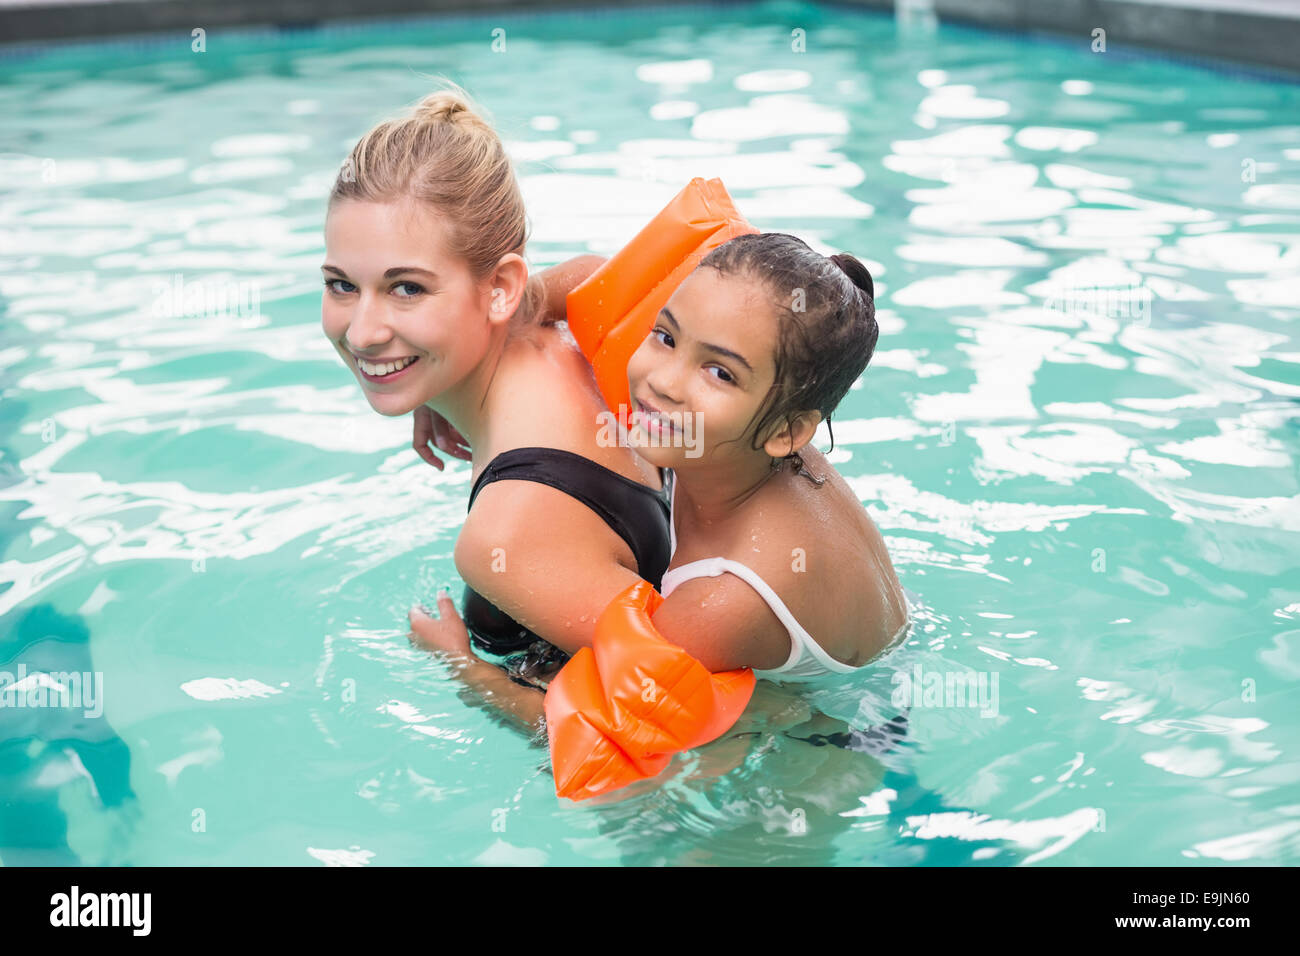 Cute little girl getting a piggy back from swimming coach - Stock Image